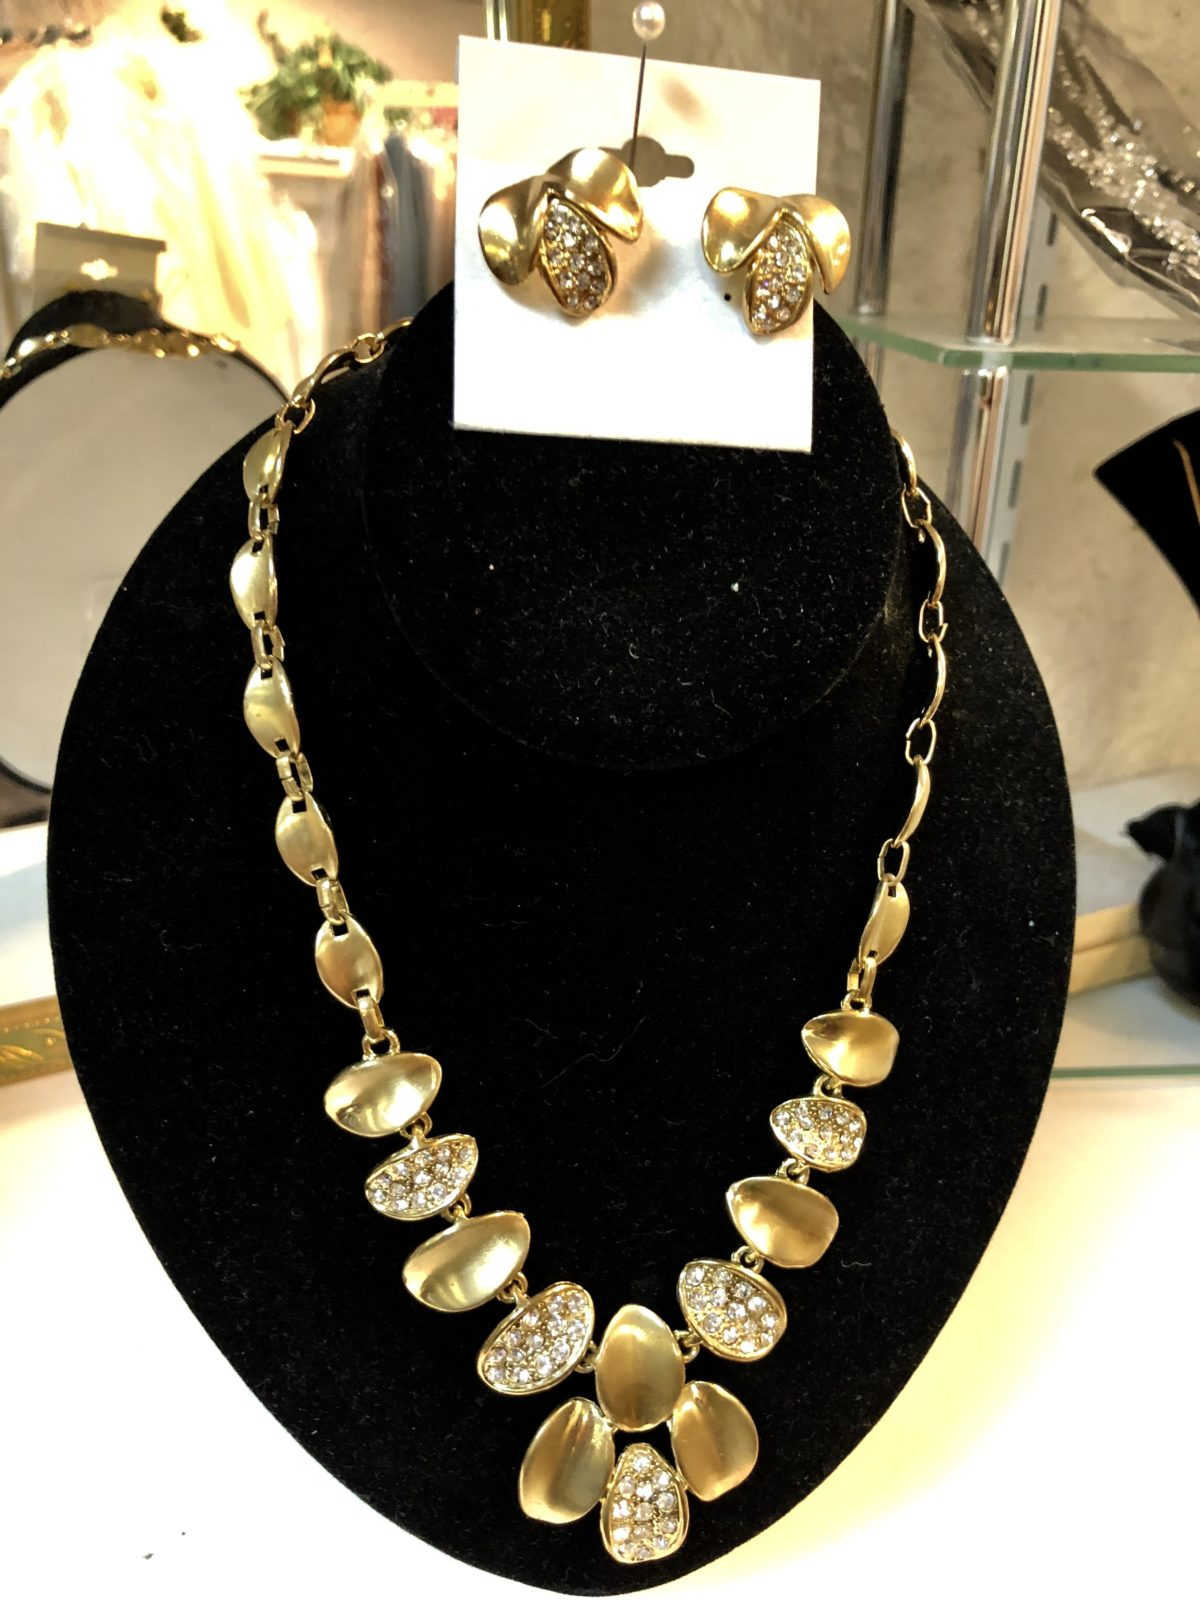 Gold Necklace and Earring Set • Gold Necklace & Earring Set with little rhinestones.  Will look great on black, blue or red colors.